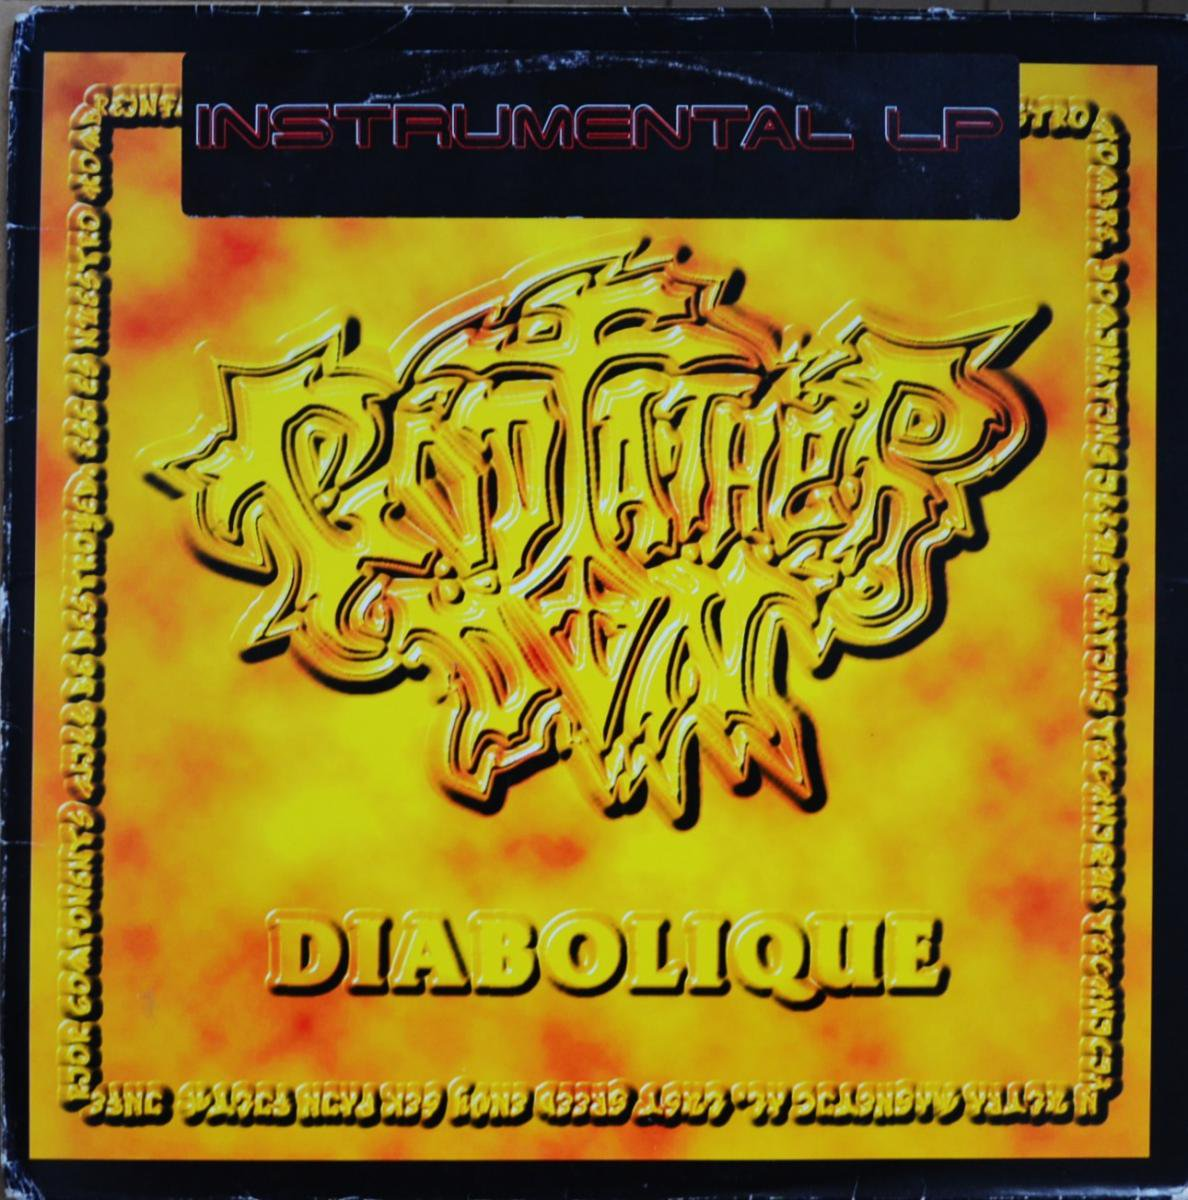 GODFATHER DON / DIABOLIQUE (INSTRUMENTALS) (2LP)